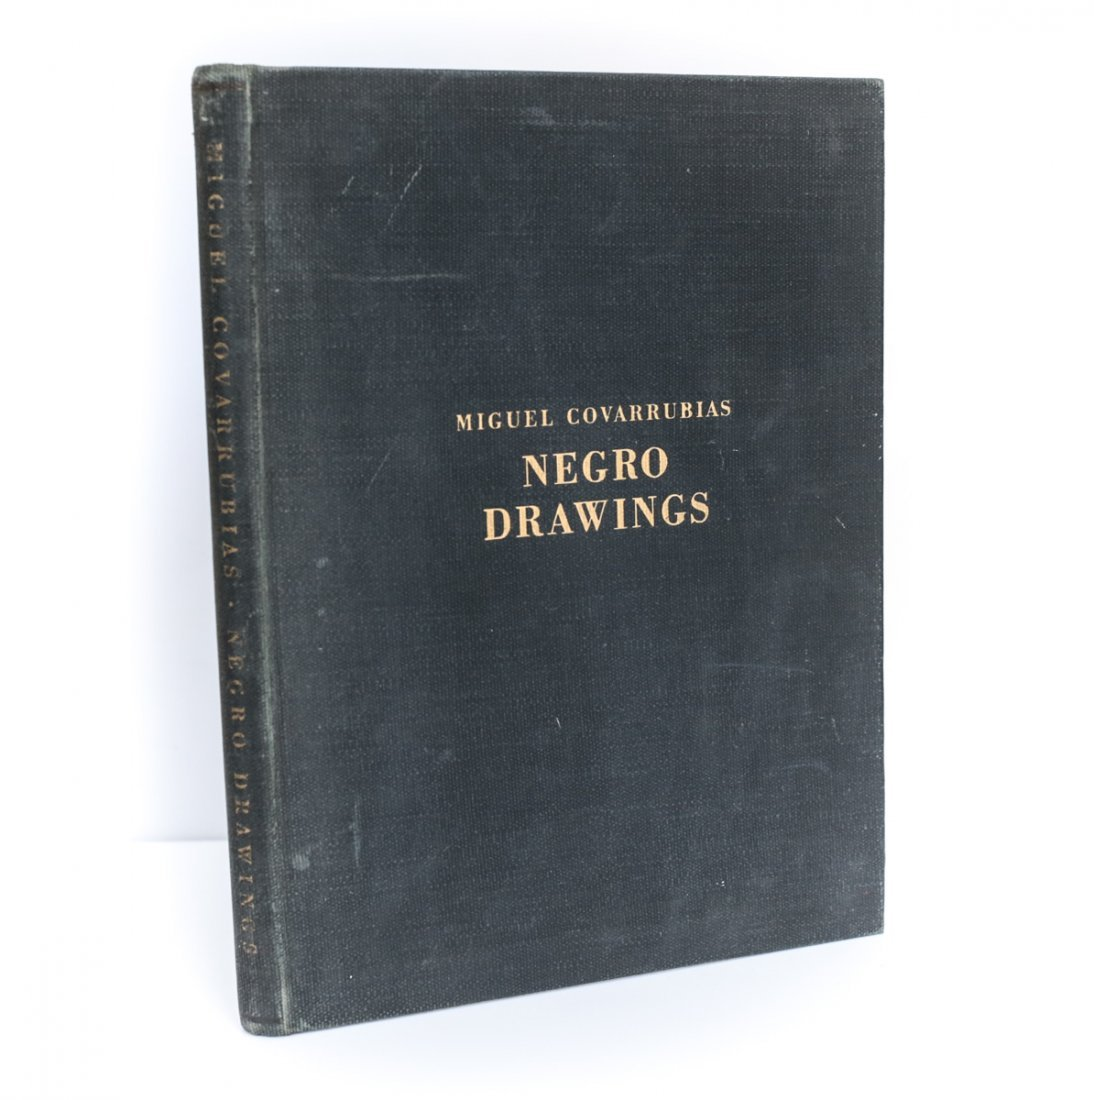 Covarrubias, Miguel Negro Drawings 1st Ed 1927